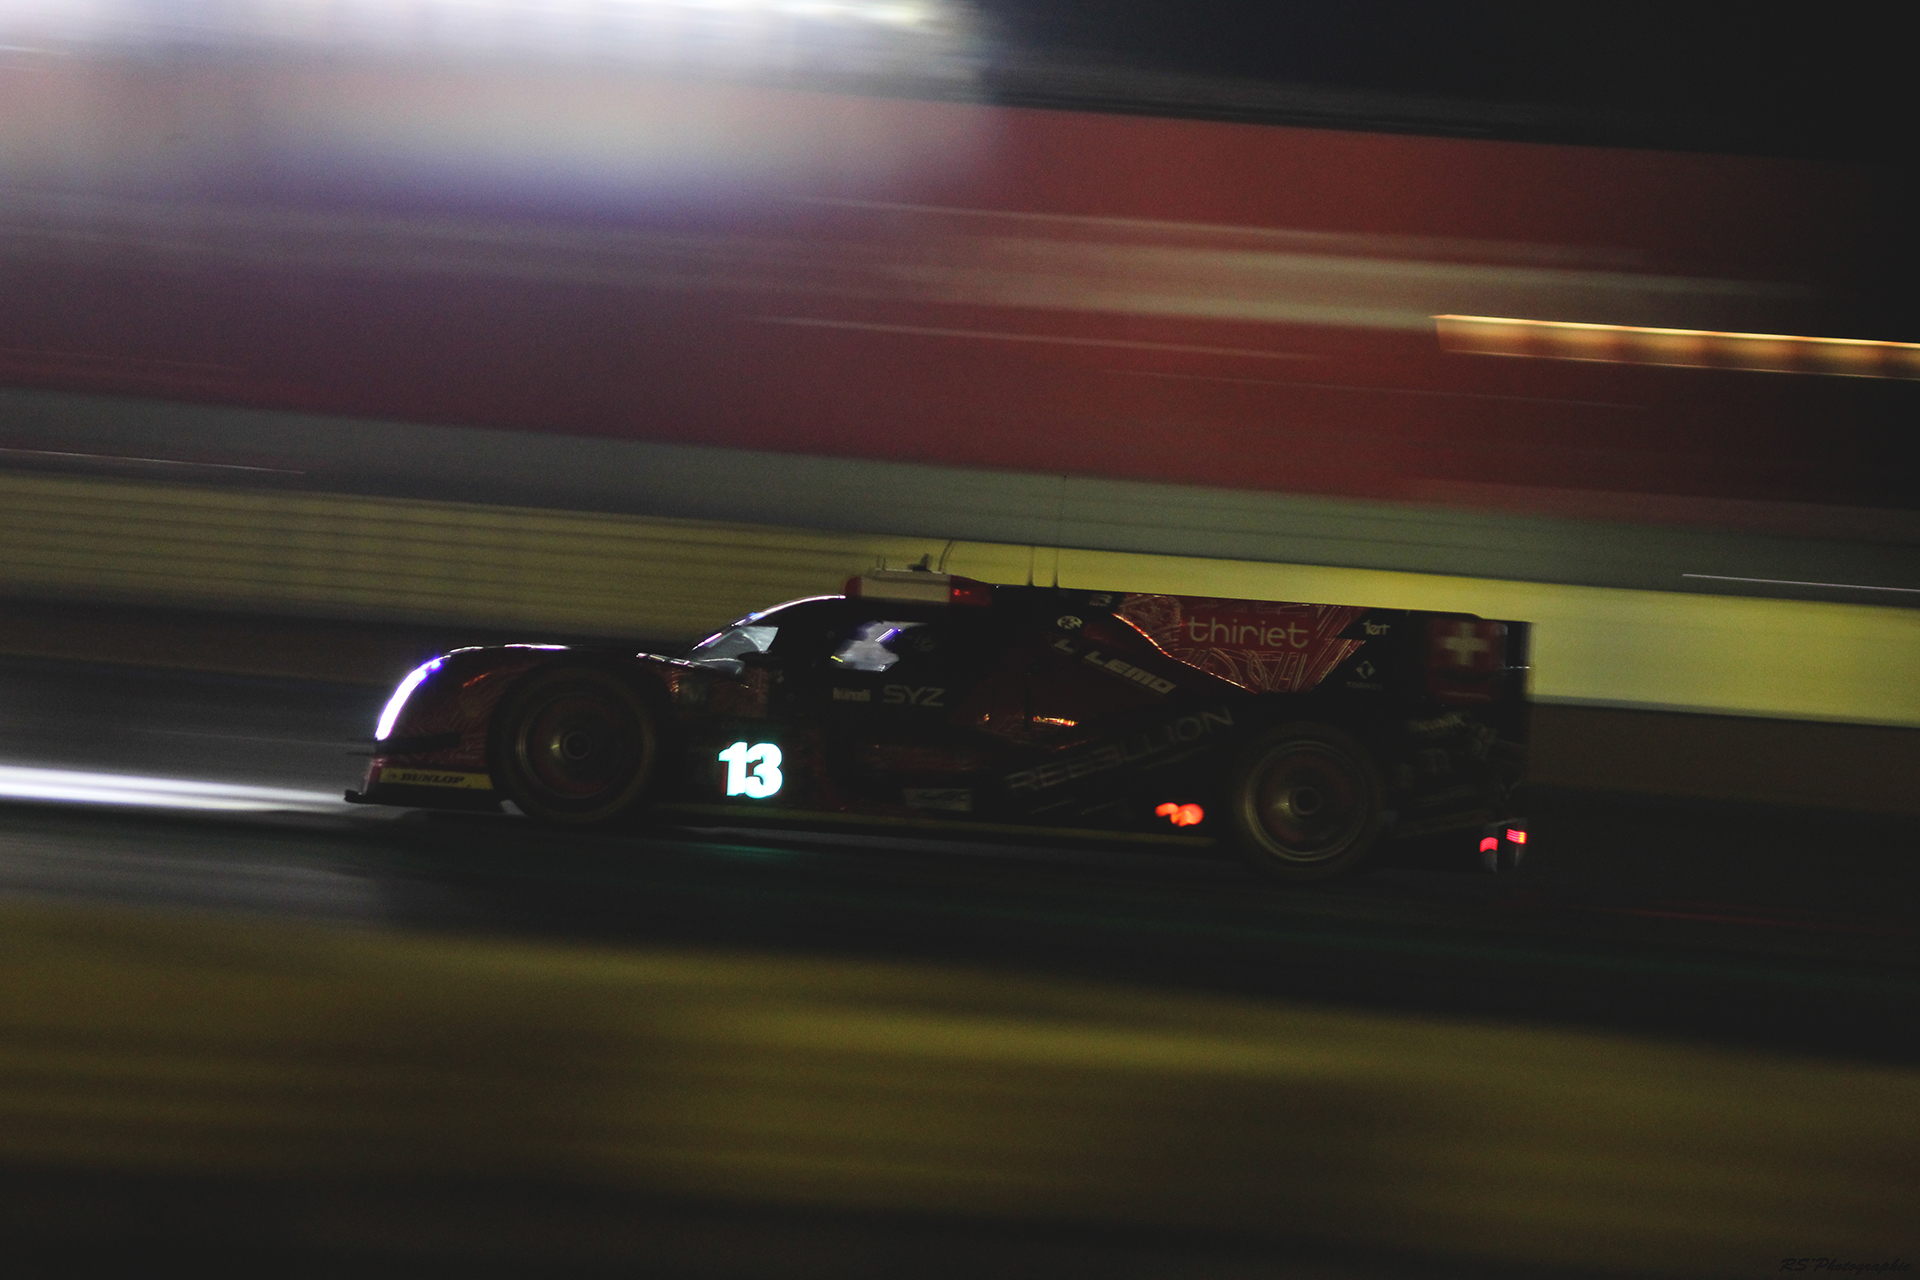 R-One - n13 - Rebellion Racing - TUSCHER - IMPERATORI - KRAIHAMER - LMP1 - 2016 LM24 - nuit - Arnaud Demasier RS Photographie